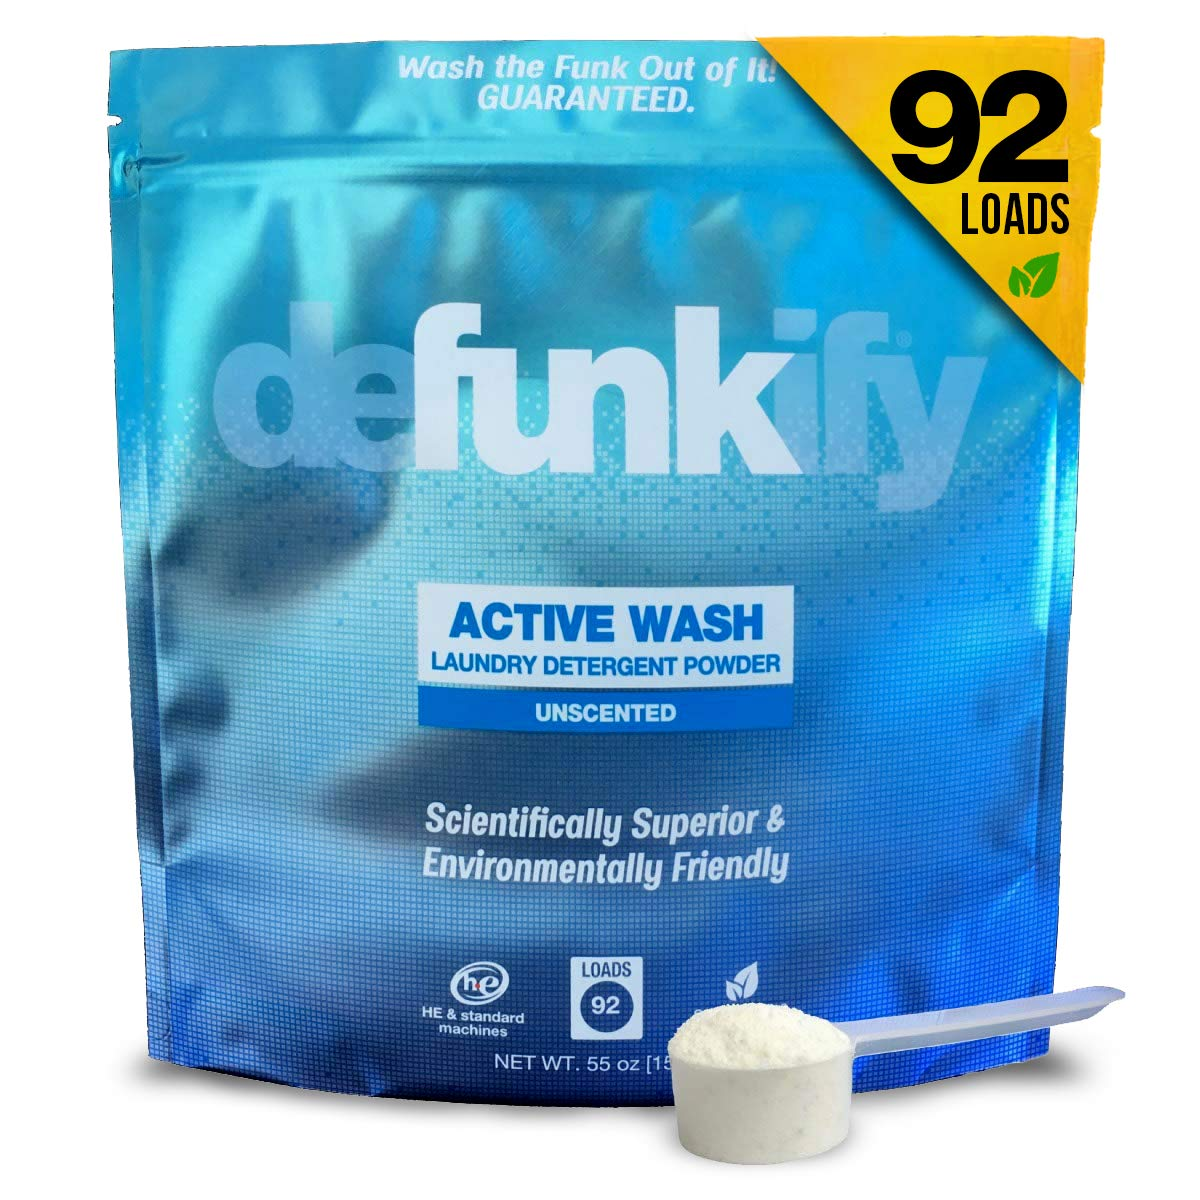 Defunkify Active Wash Laundry Detergent Powder, All Natural, Plant-Based, Enzyme Cleaner, Active Wear Odor and Stain Remover, Free and Clear, Unscented and Safe for All Ages - 55 oz (92 Loads)